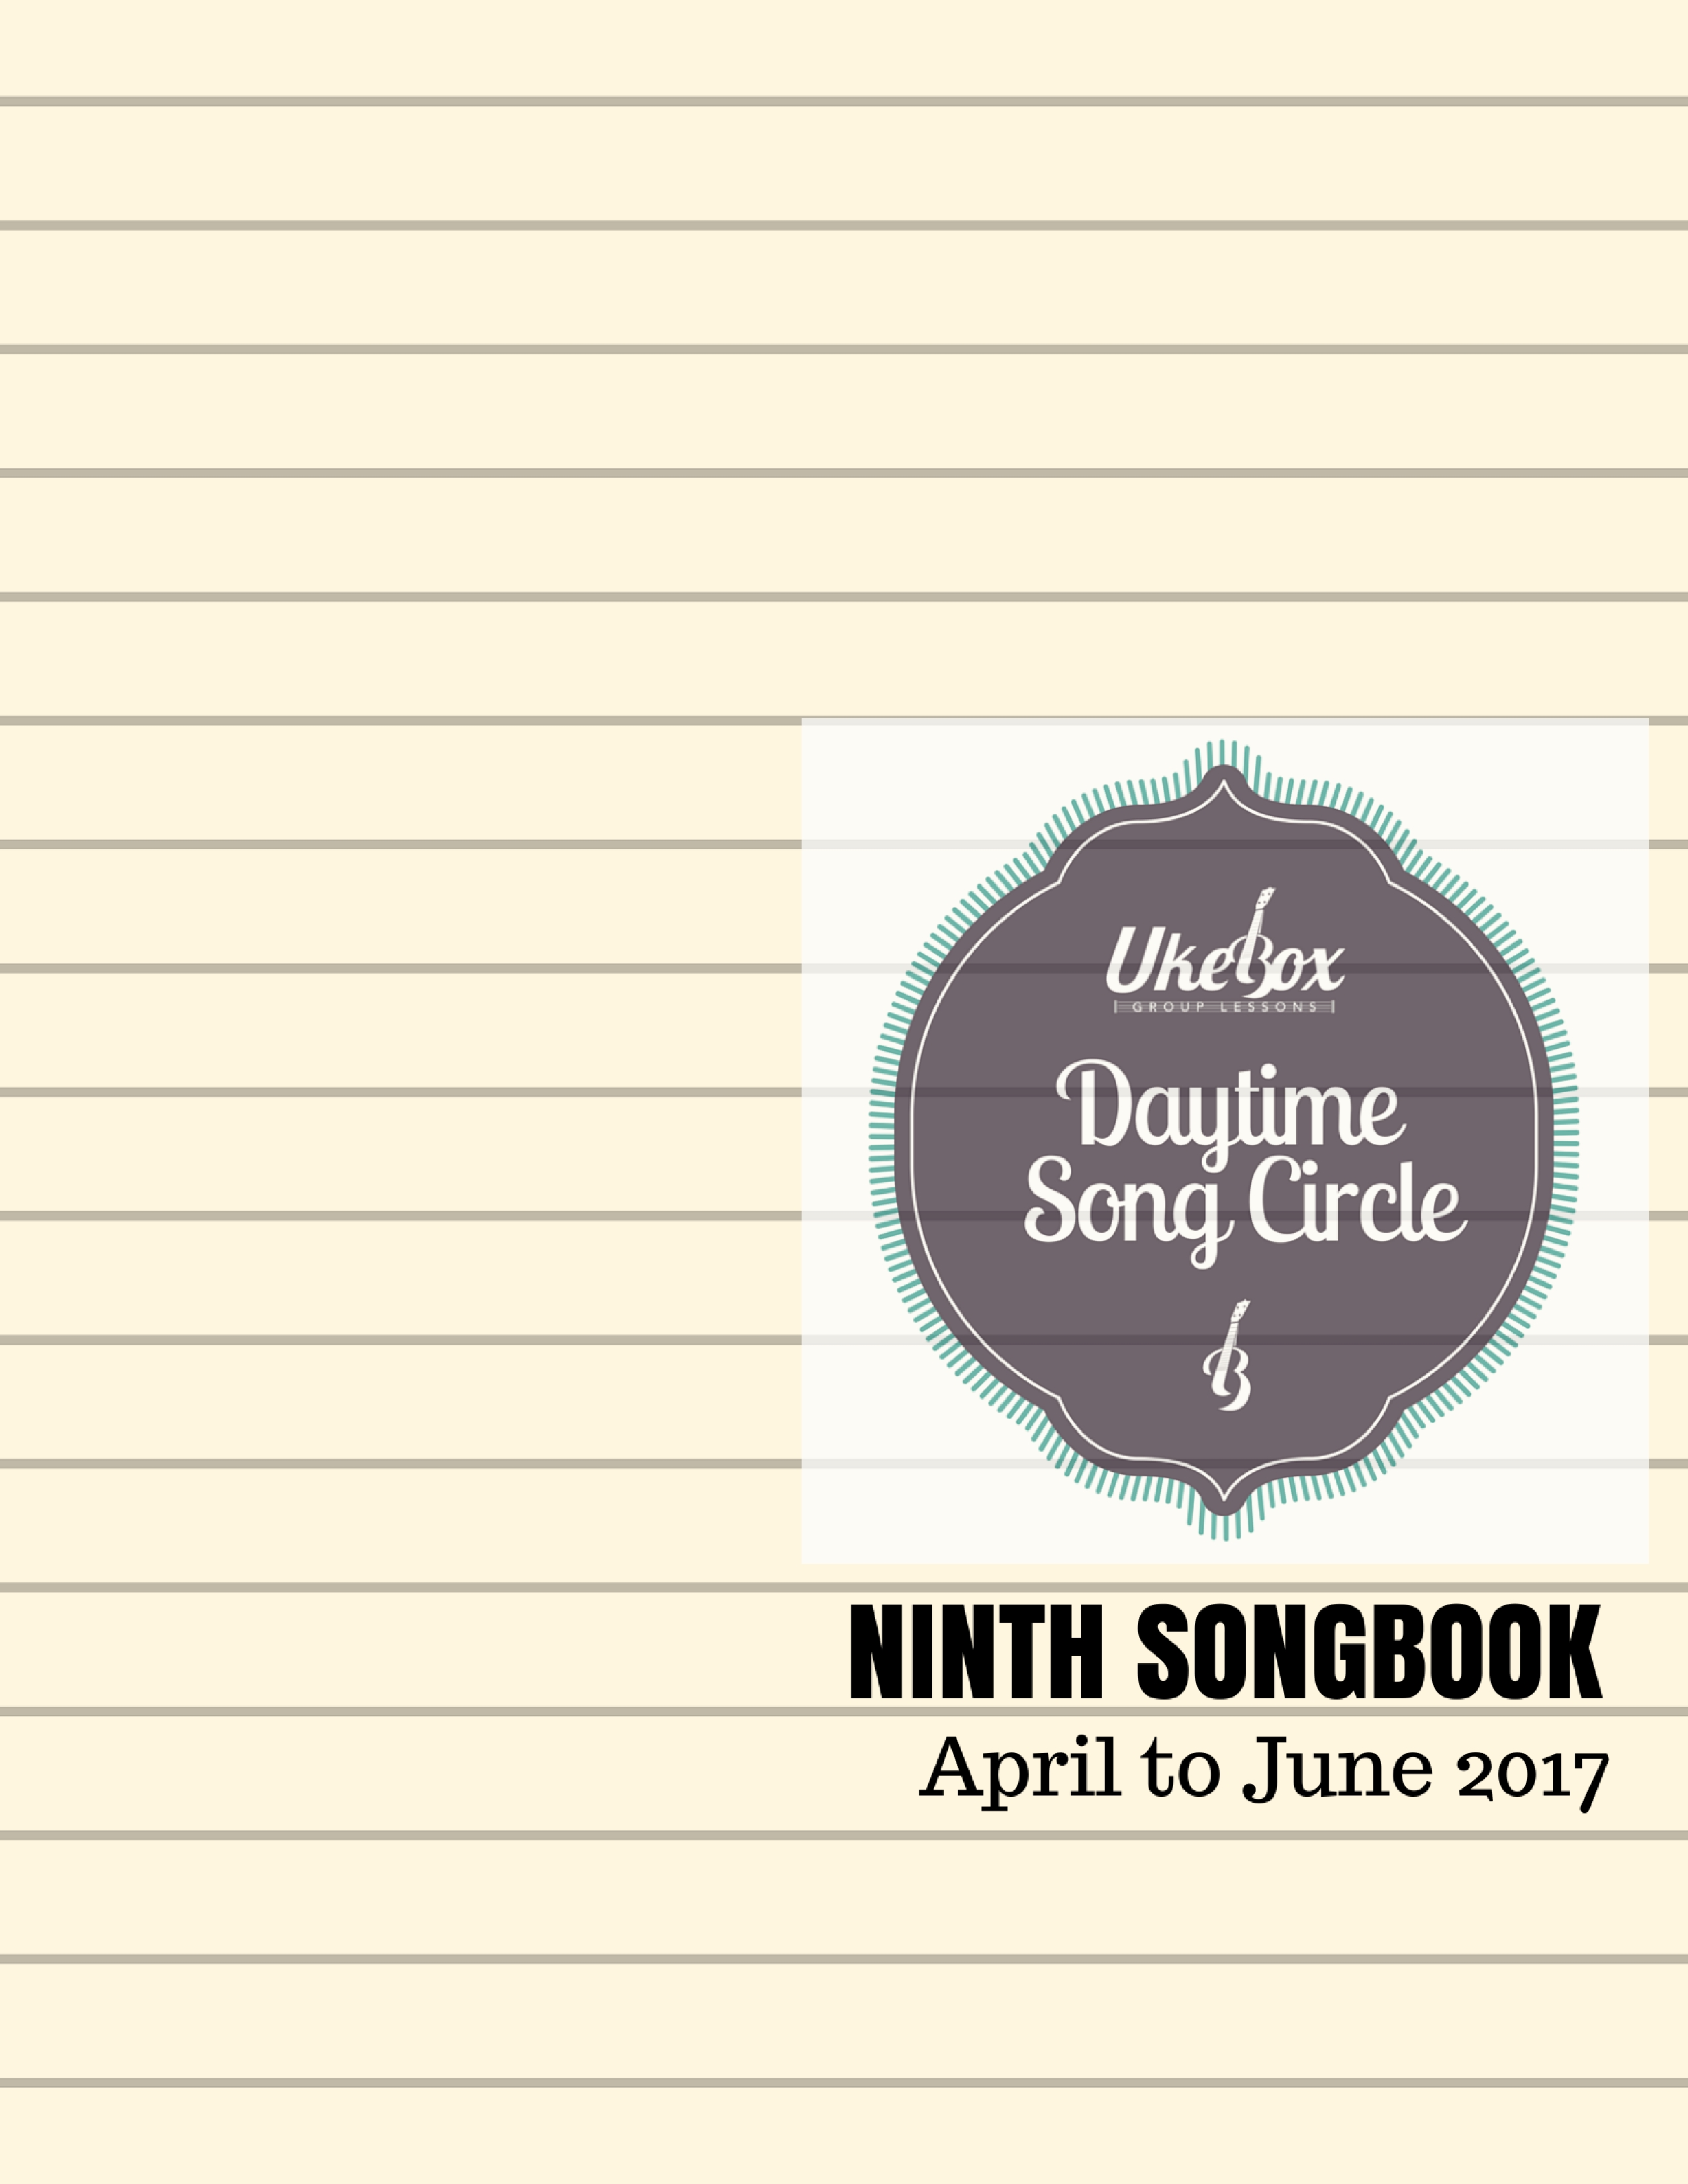 Songcircle Ninth Songbook April June 2017